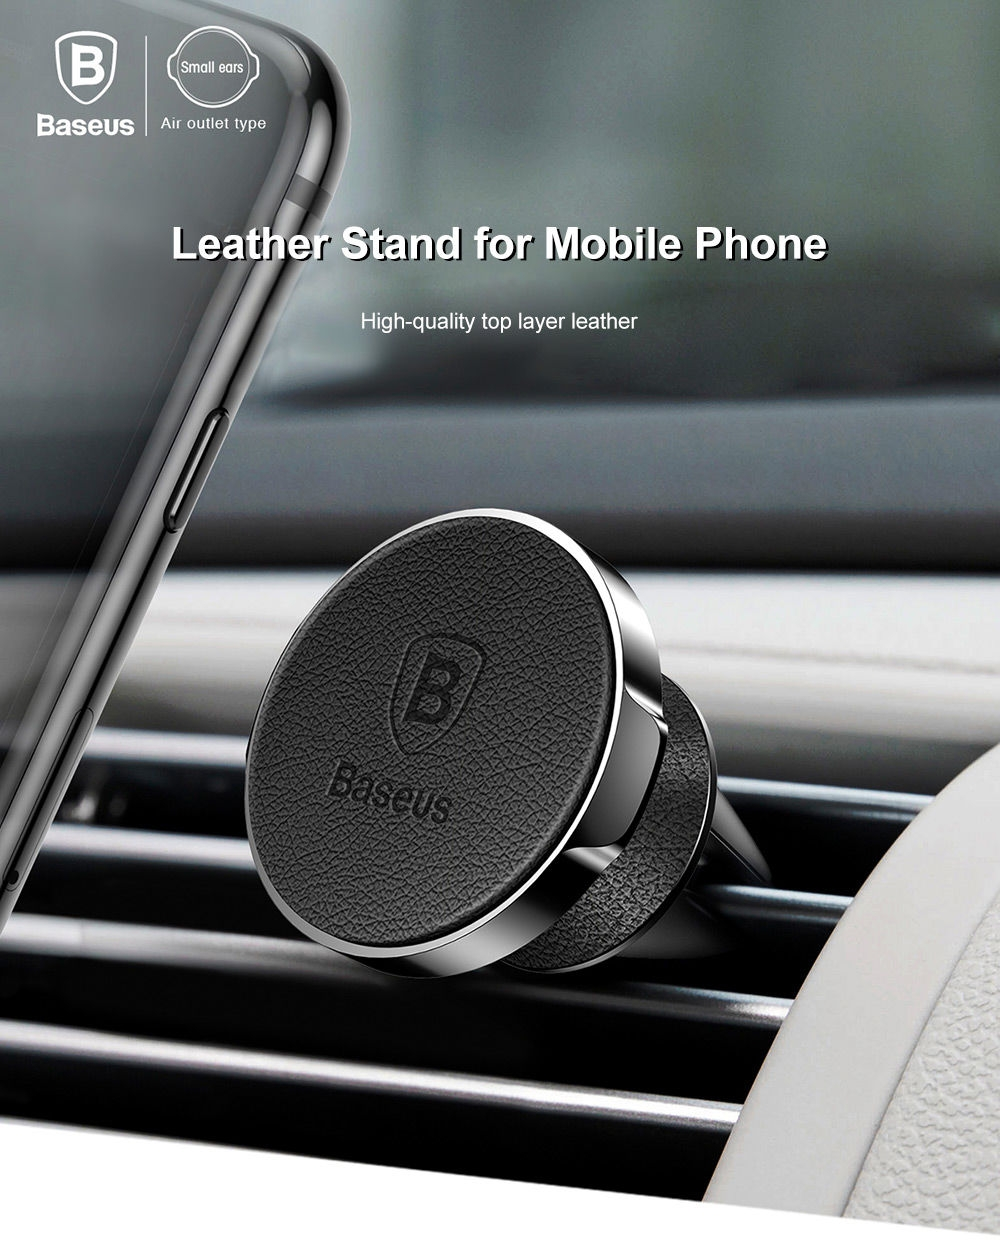 Baseus Small Ears Series Magnetic Suction Bracket Phone Holder Genuine Leather ( Air Outlet Type )